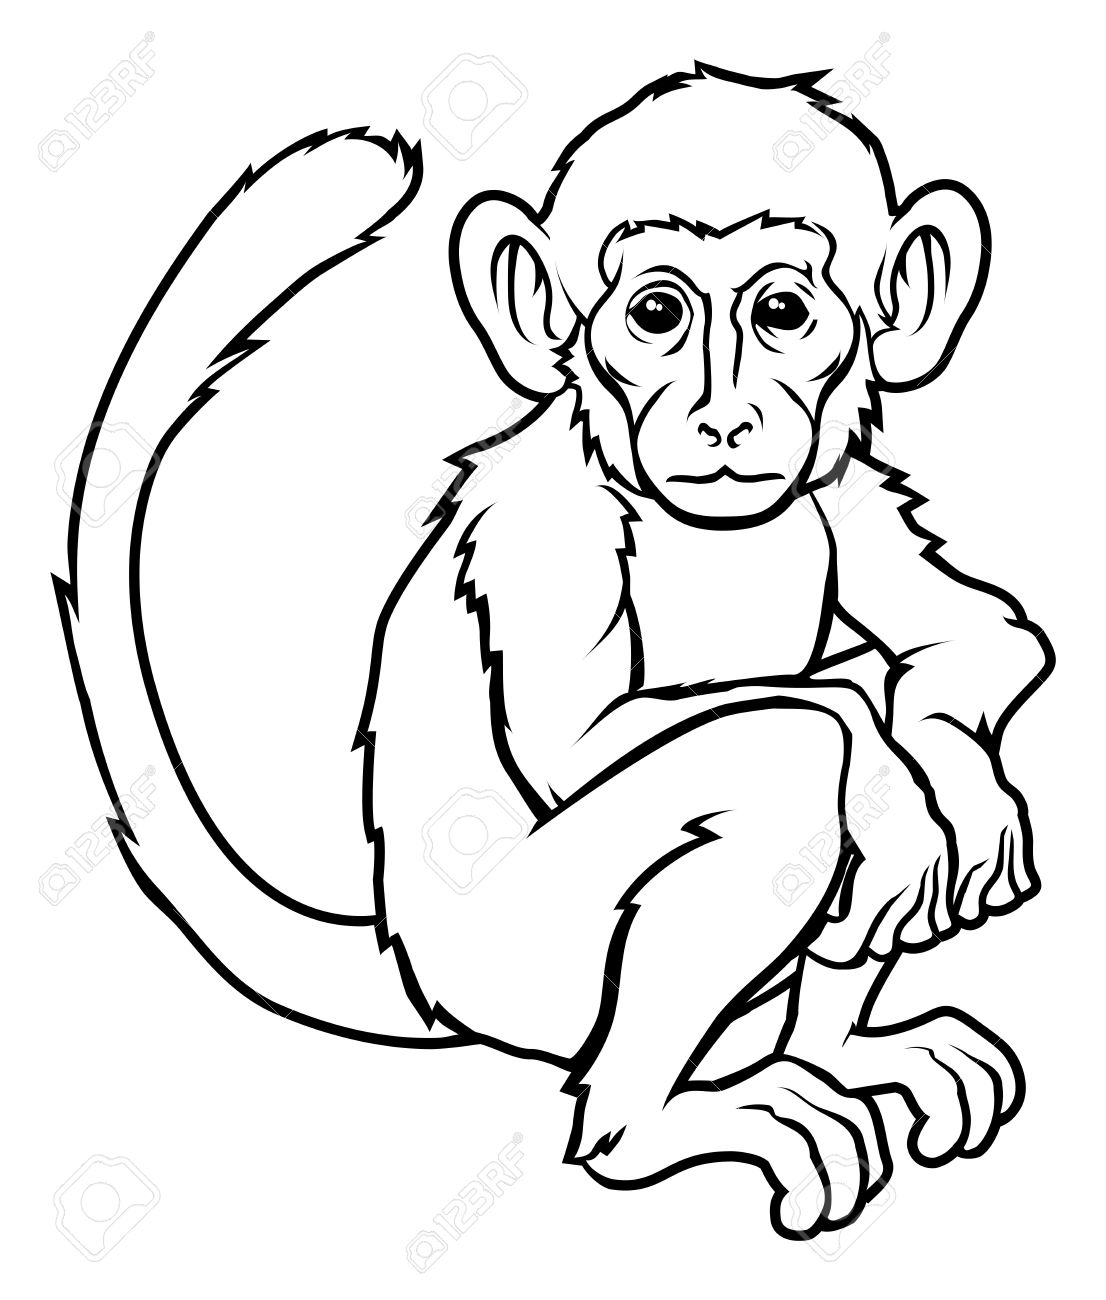 Line Drawing Monkey : Monkey line drawing gallery